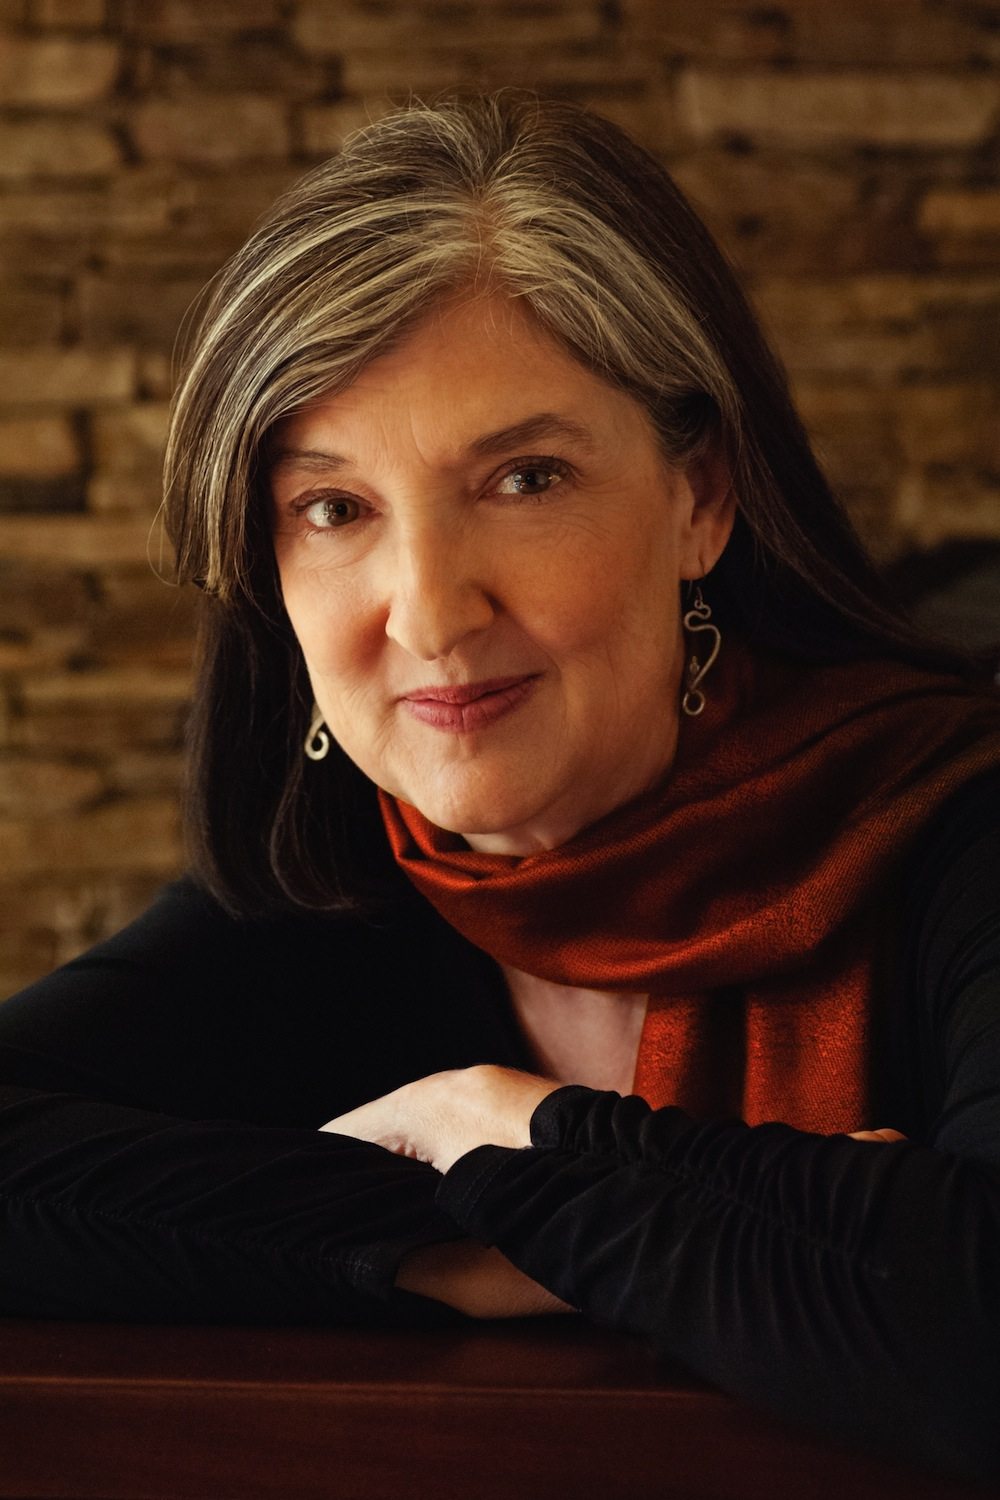 """stone soup barbara kingsolver As both richard rodriquez, in """"family values,"""" and barbara kingsolver, in """"stone soup,"""" point out, us family structures have become increasingly diverse."""